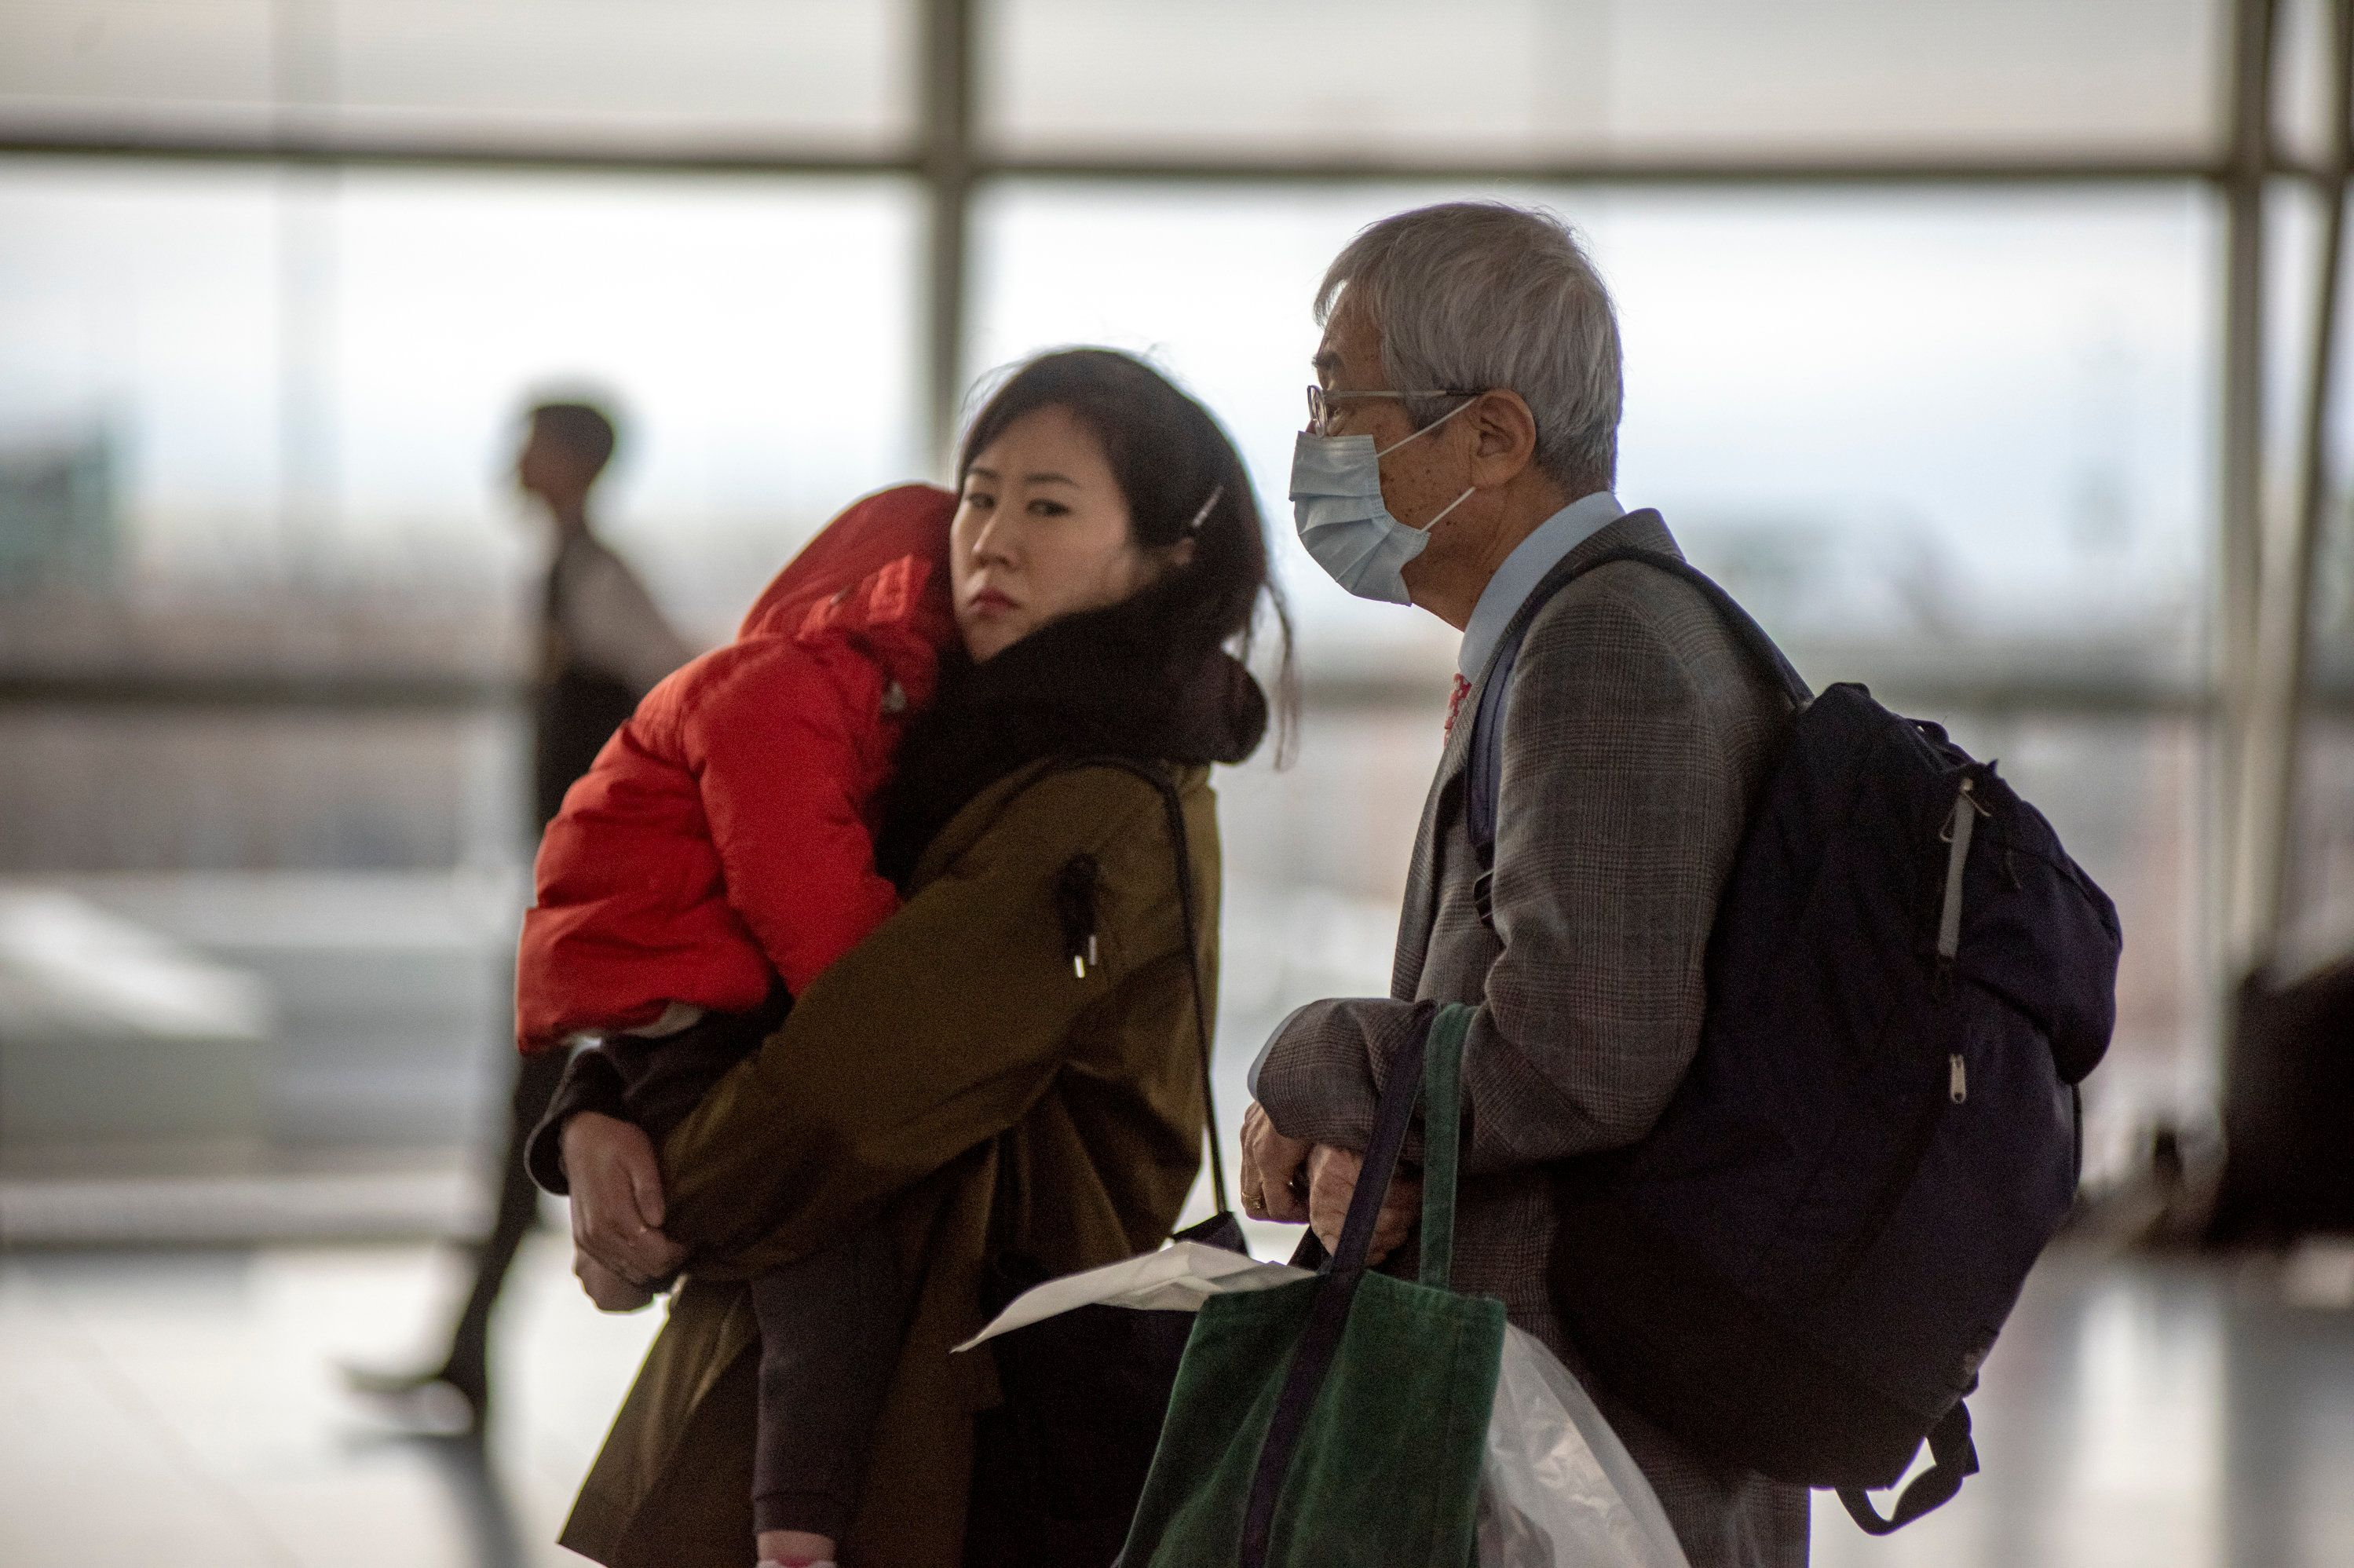 Trump Administration Restricts Entry Into U.S. From China